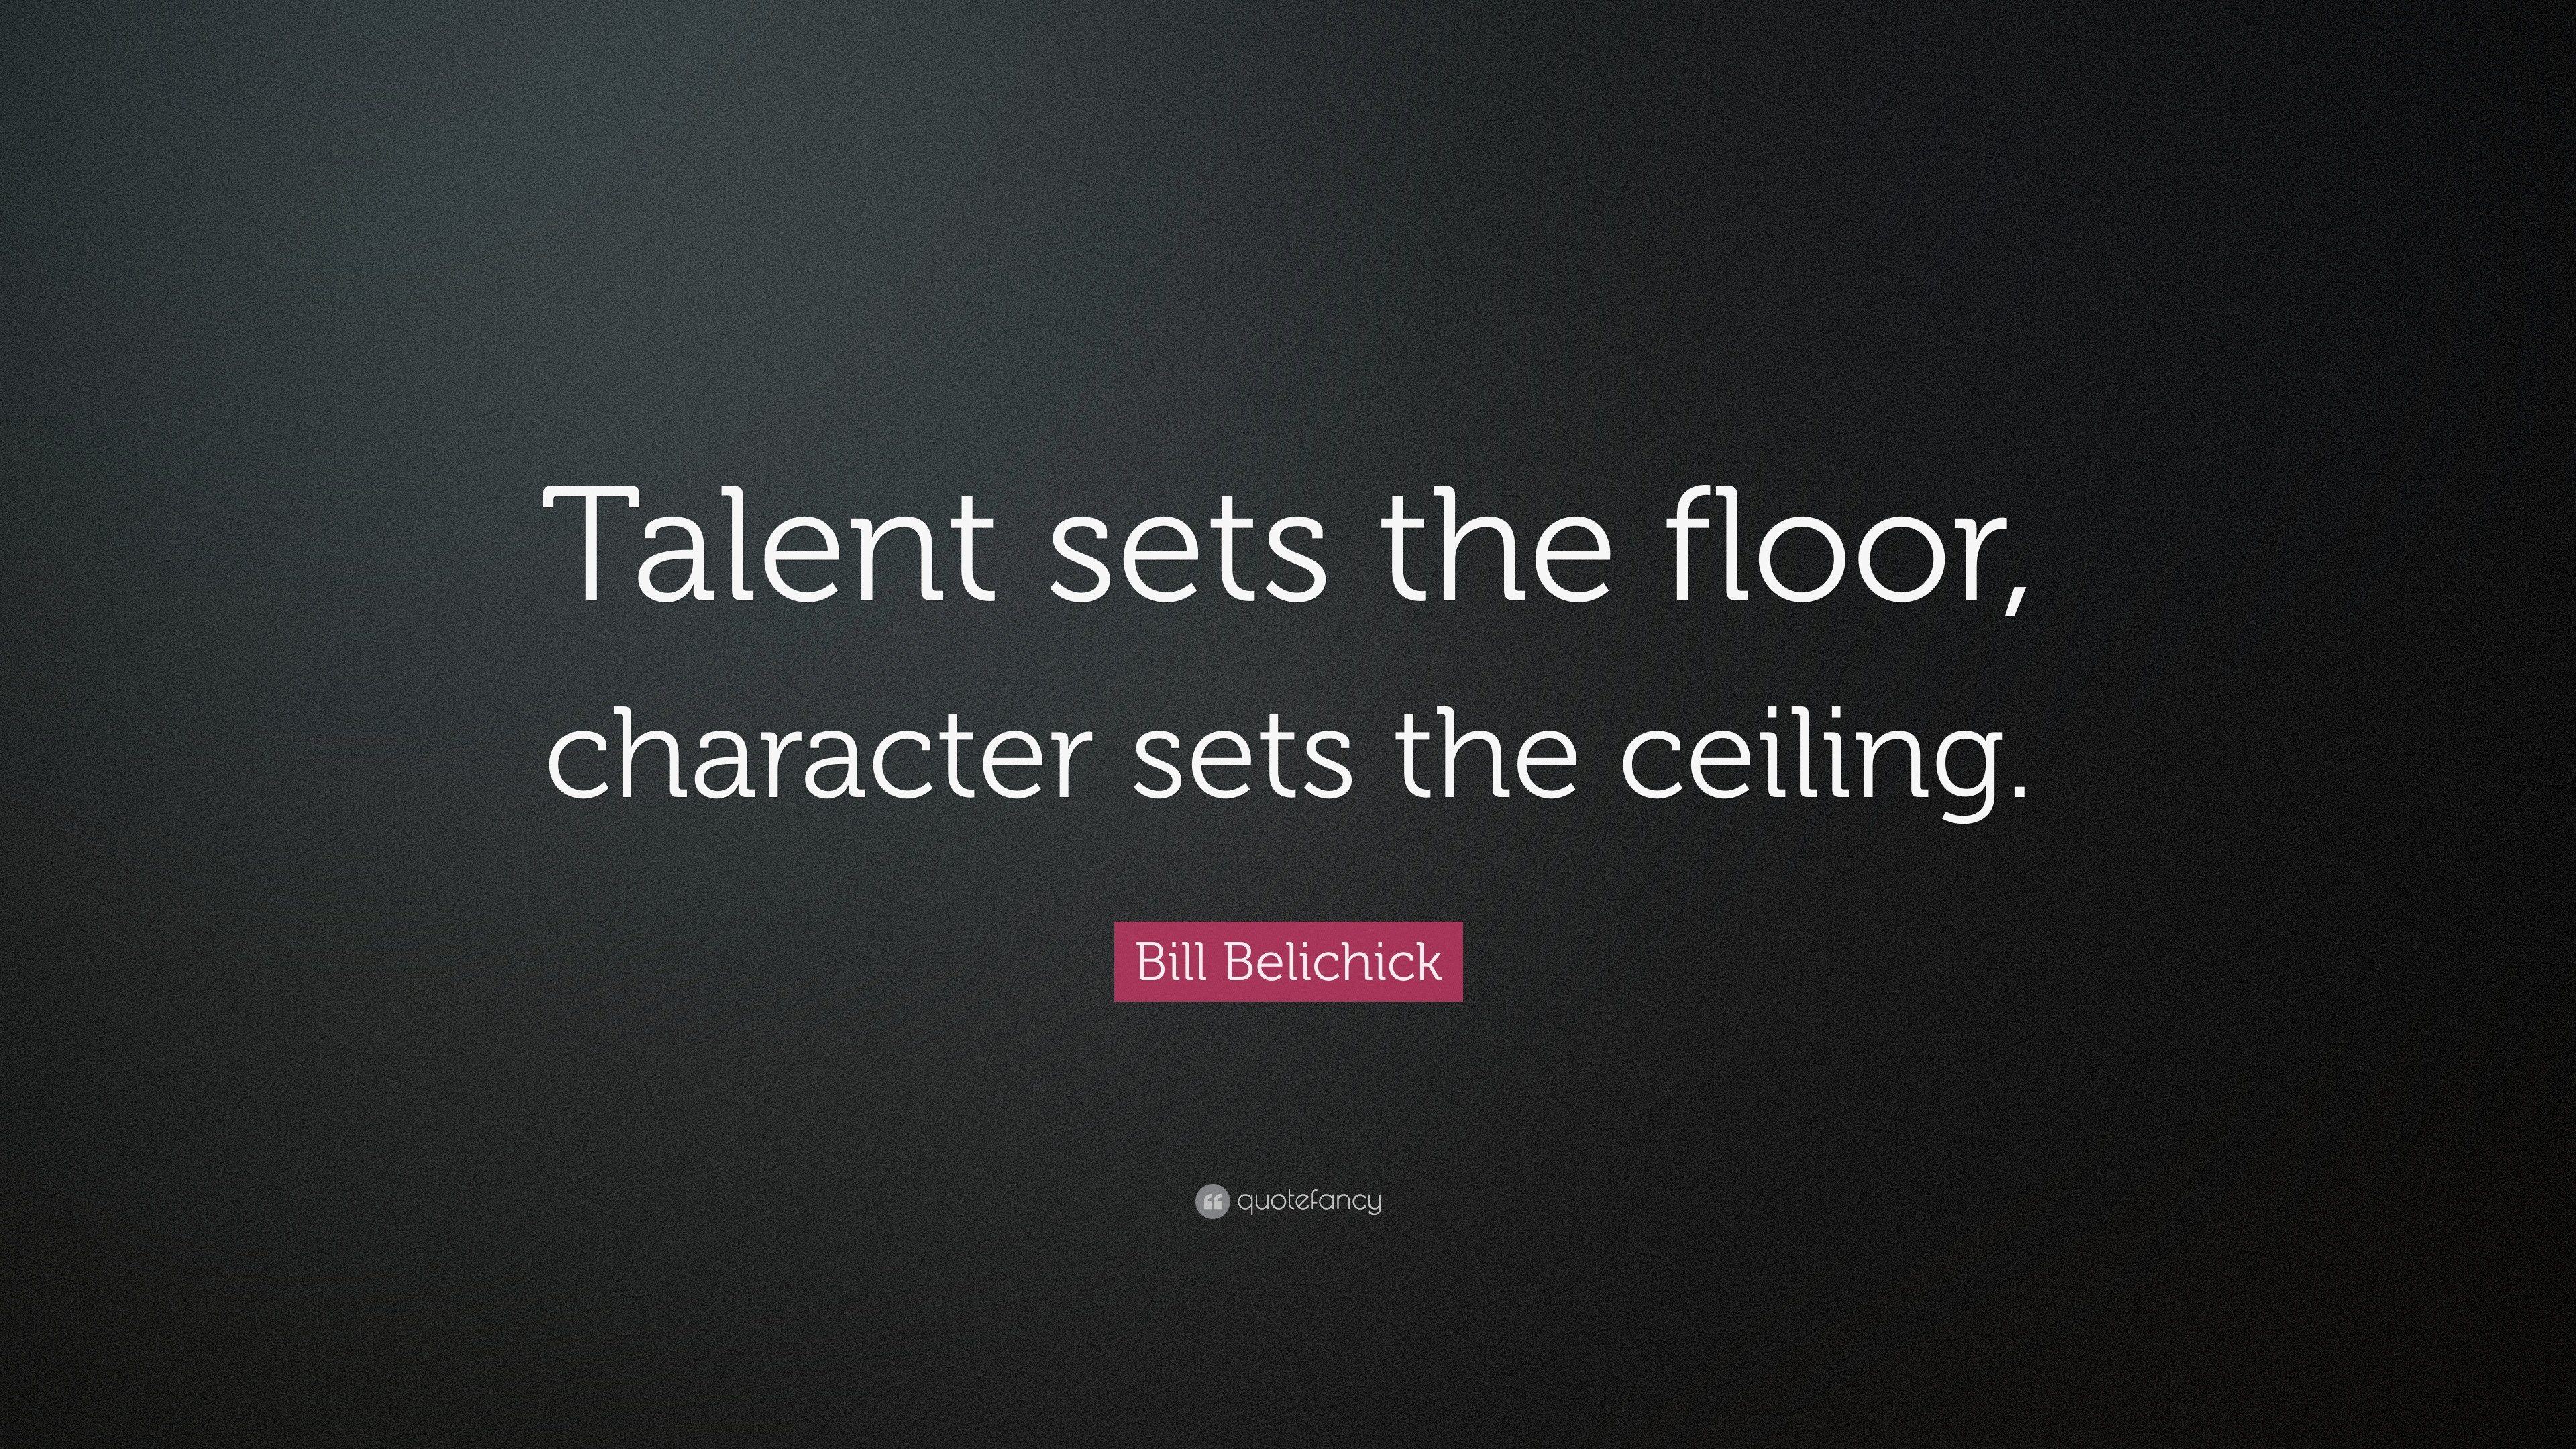 Quotes About Character Bill Belichick Quotes 20 Wallpapers  Quotefancy